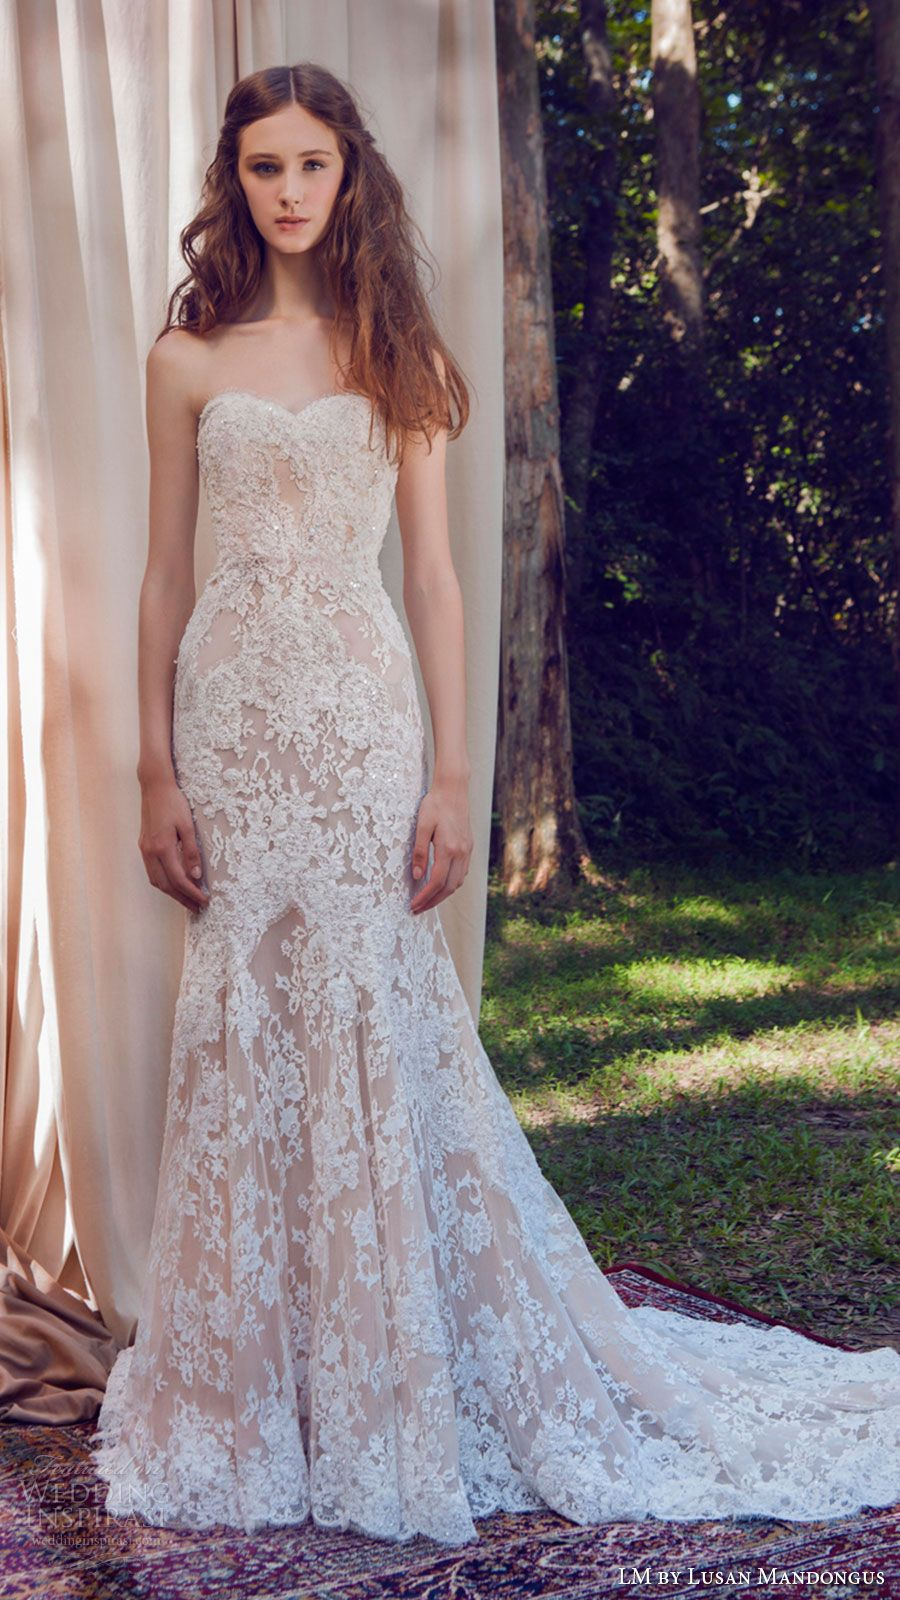 LM by Lusan Mandongus 2017 Wedding Dresses | Pinterest ...